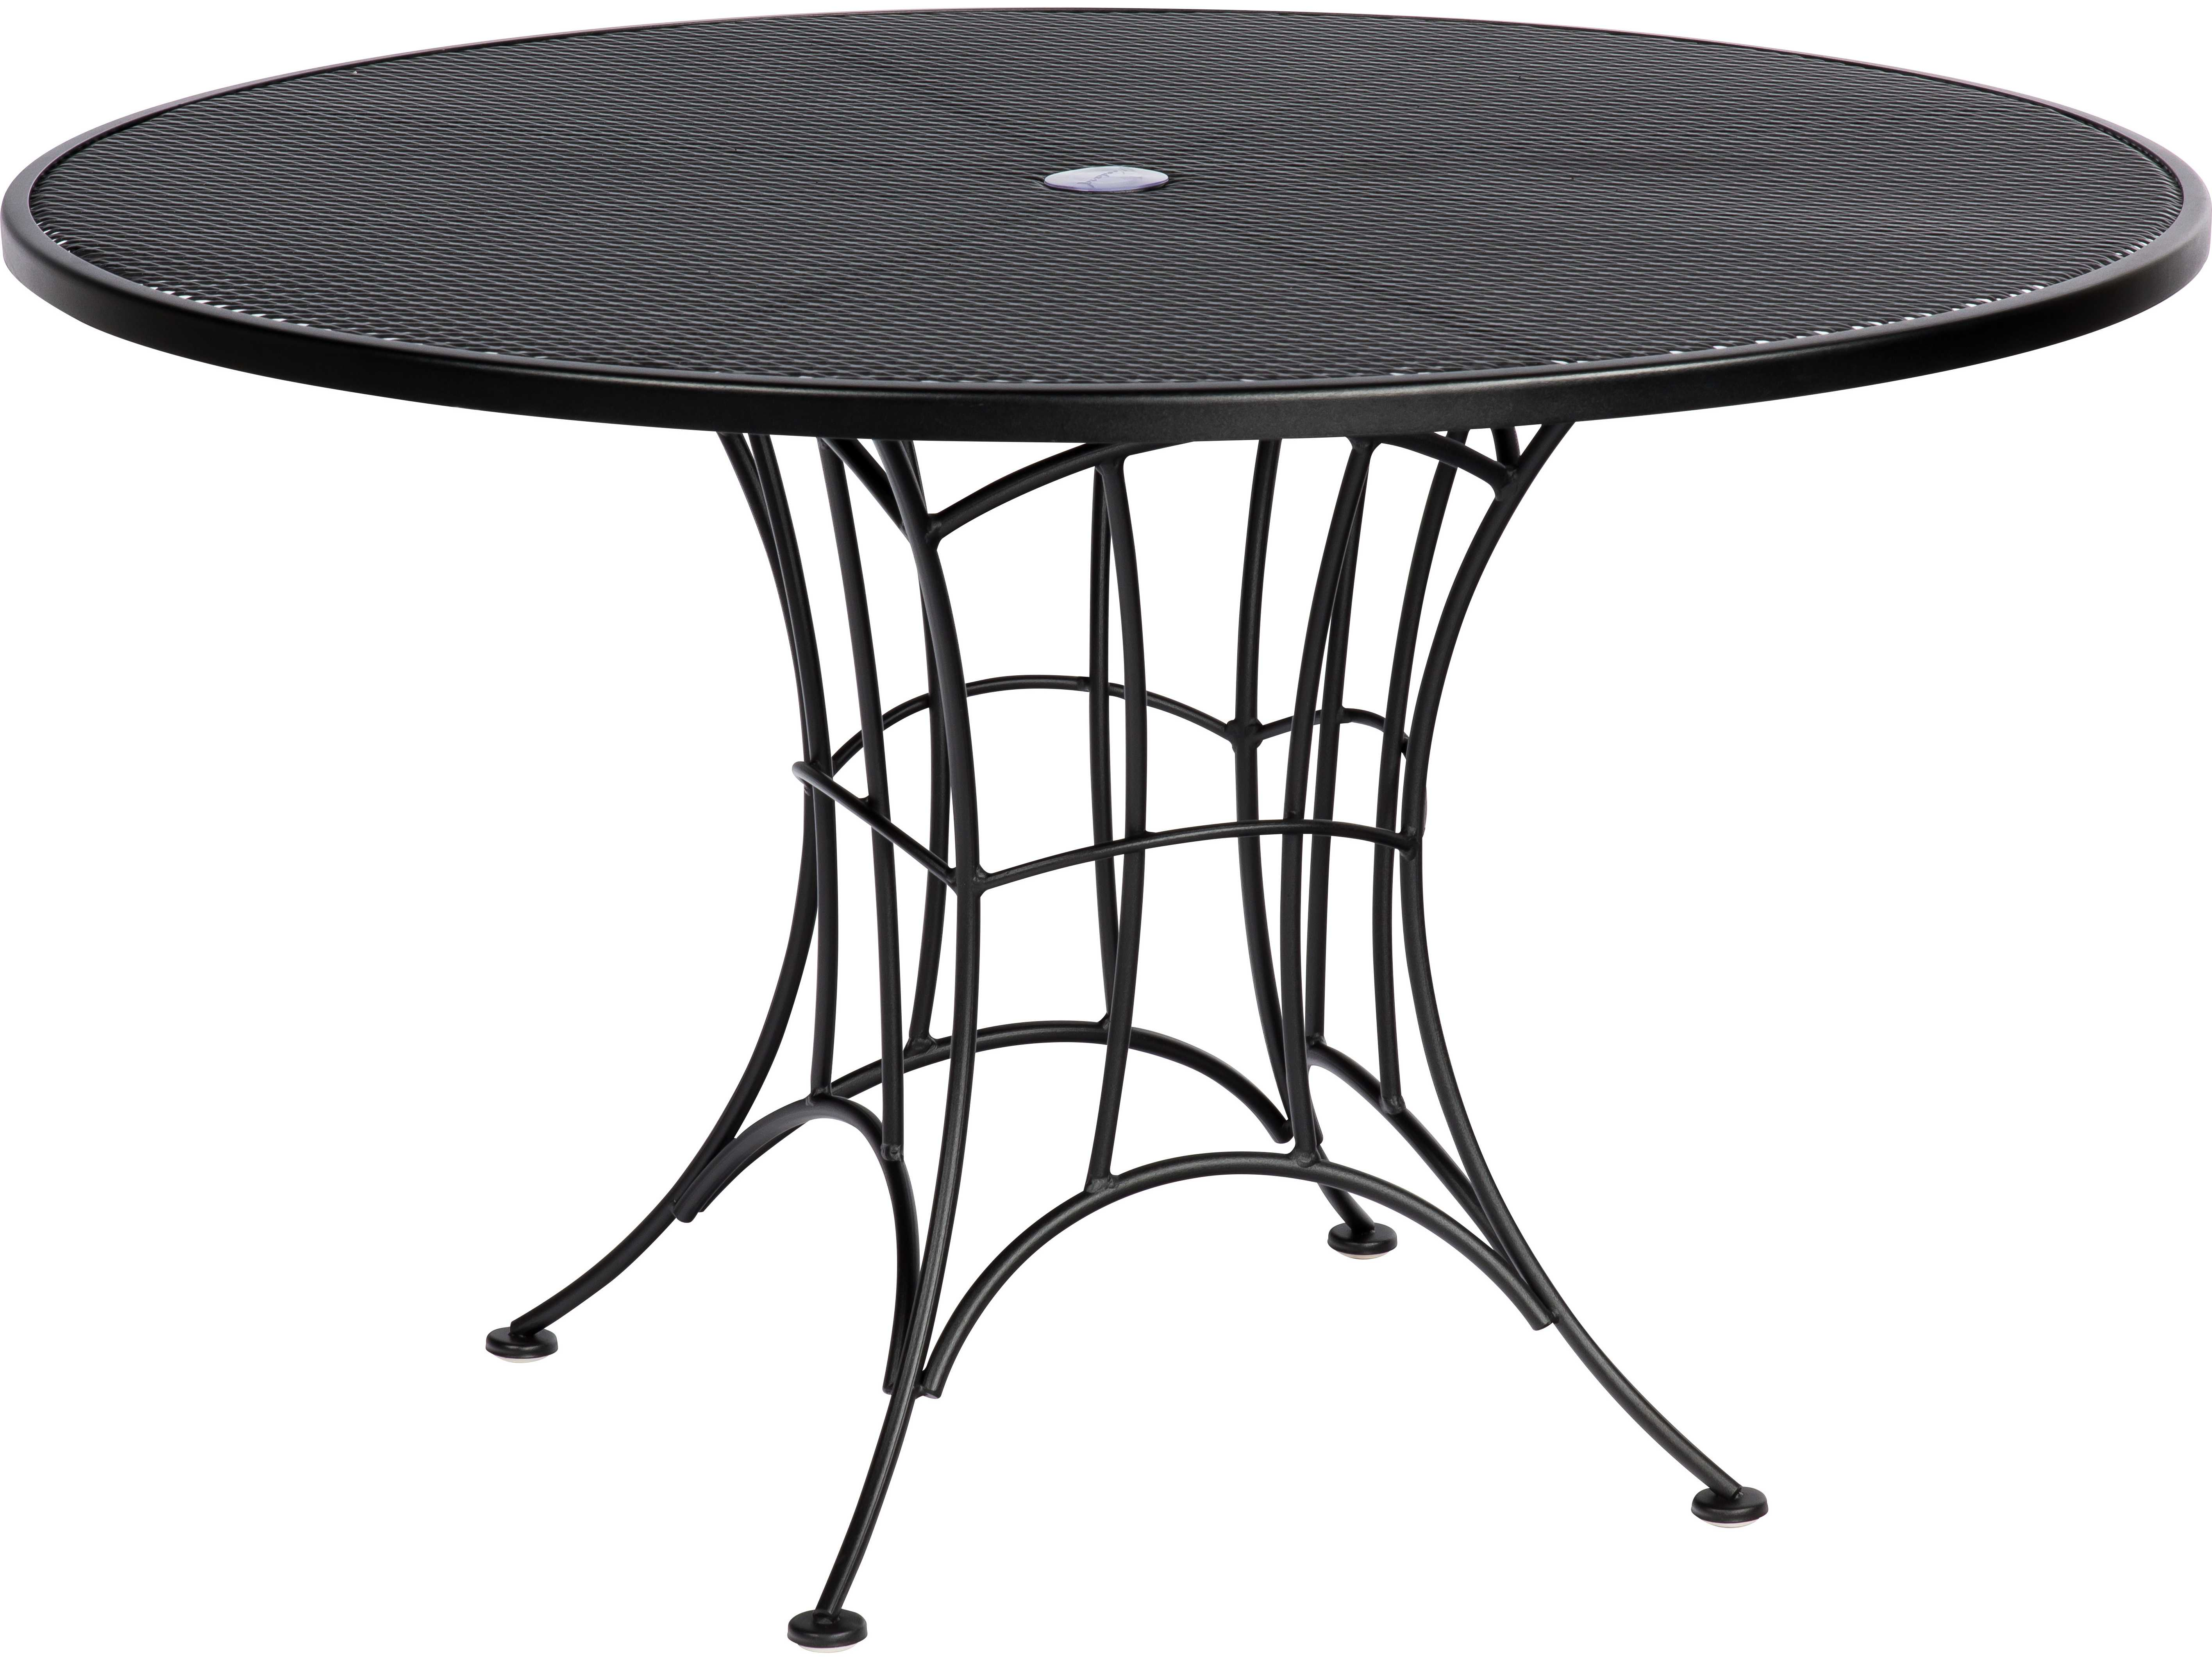 woodard hamilton wrought iron round umbrella dining table 6k0137. Black Bedroom Furniture Sets. Home Design Ideas